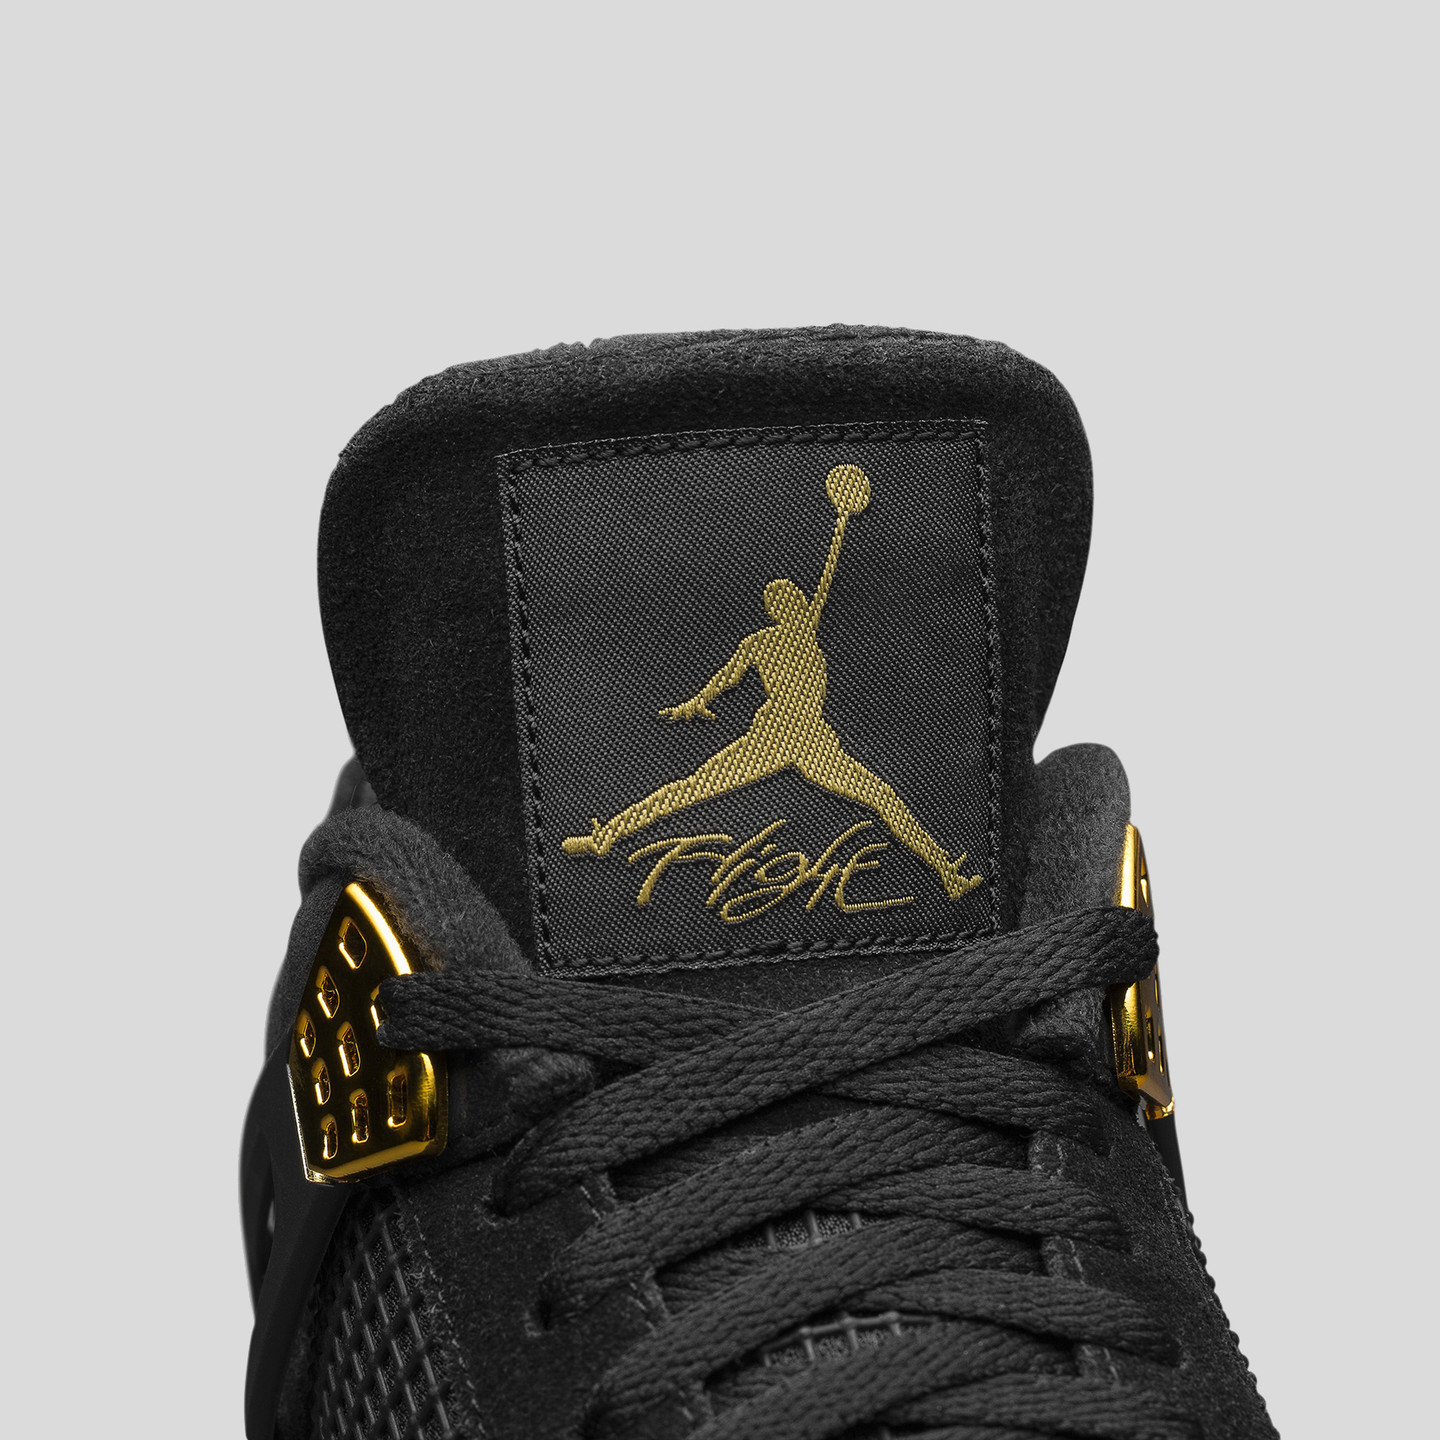 Jordan Air Jordan 4 Retro GS 'Royalty' Black / Metallic Gold / White 408452-032-36